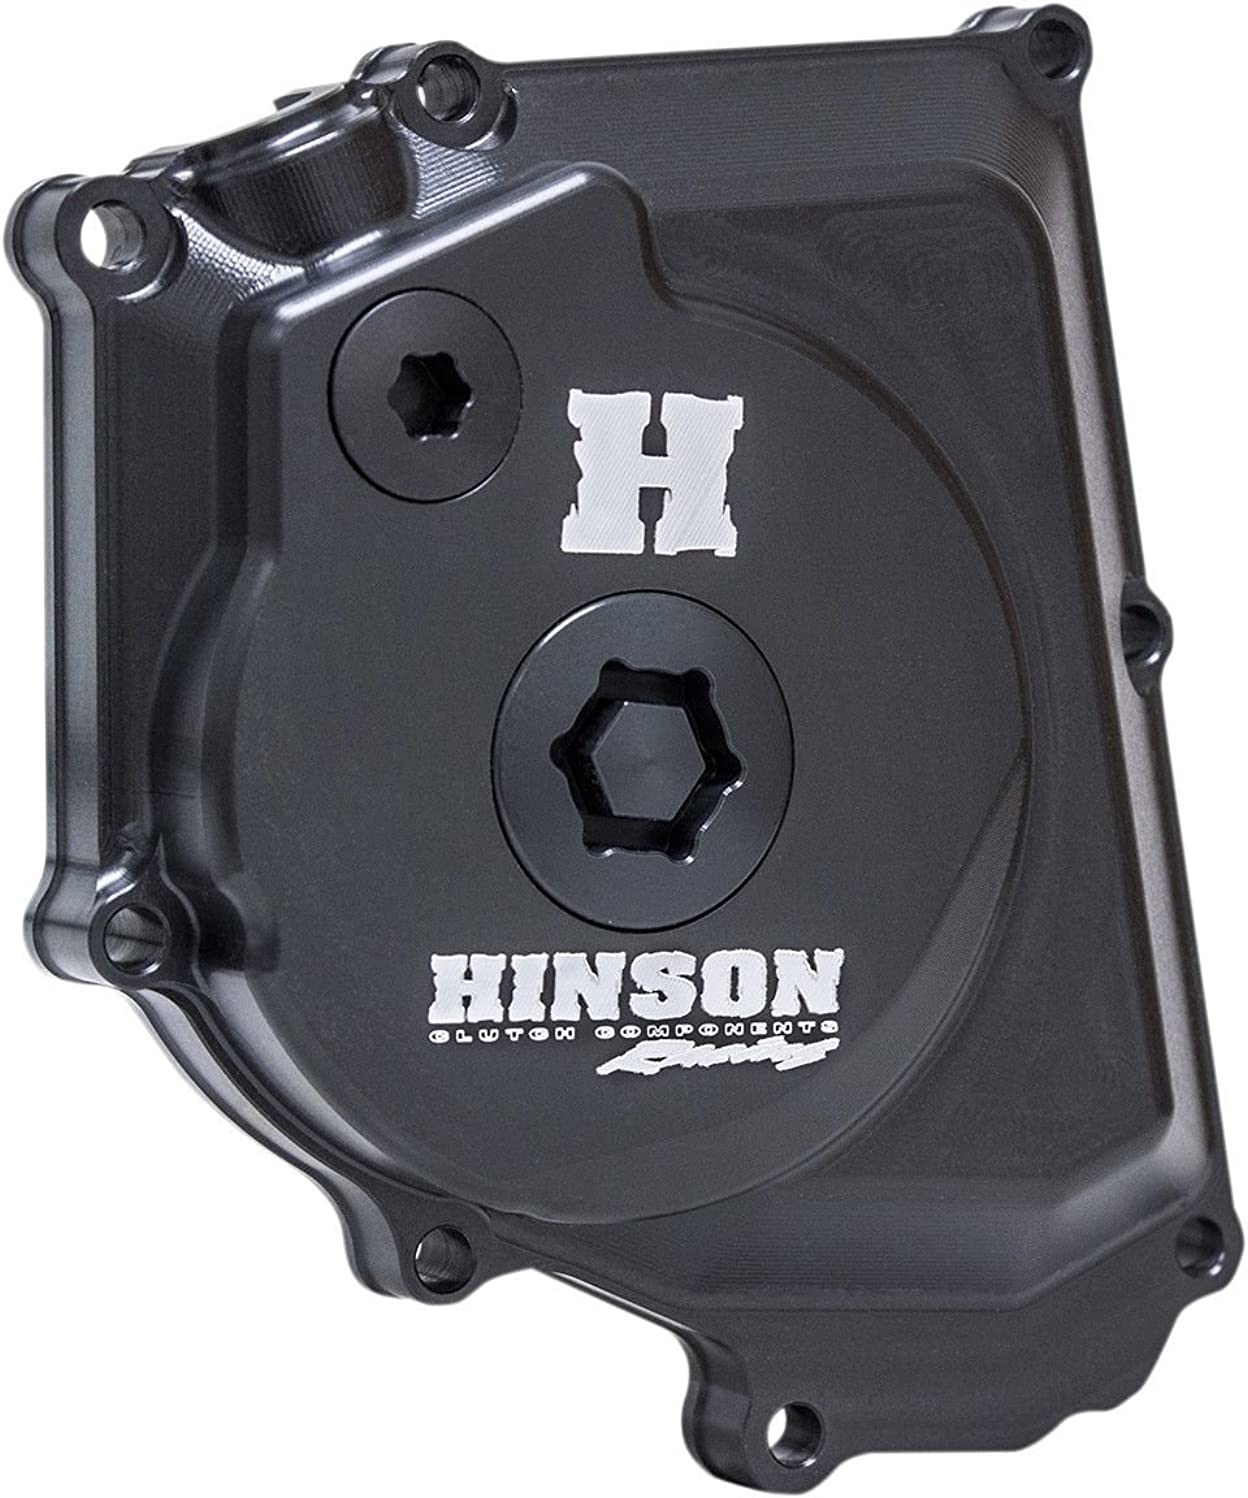 Hinson?Clutch?Components IC430 Ignition Cover